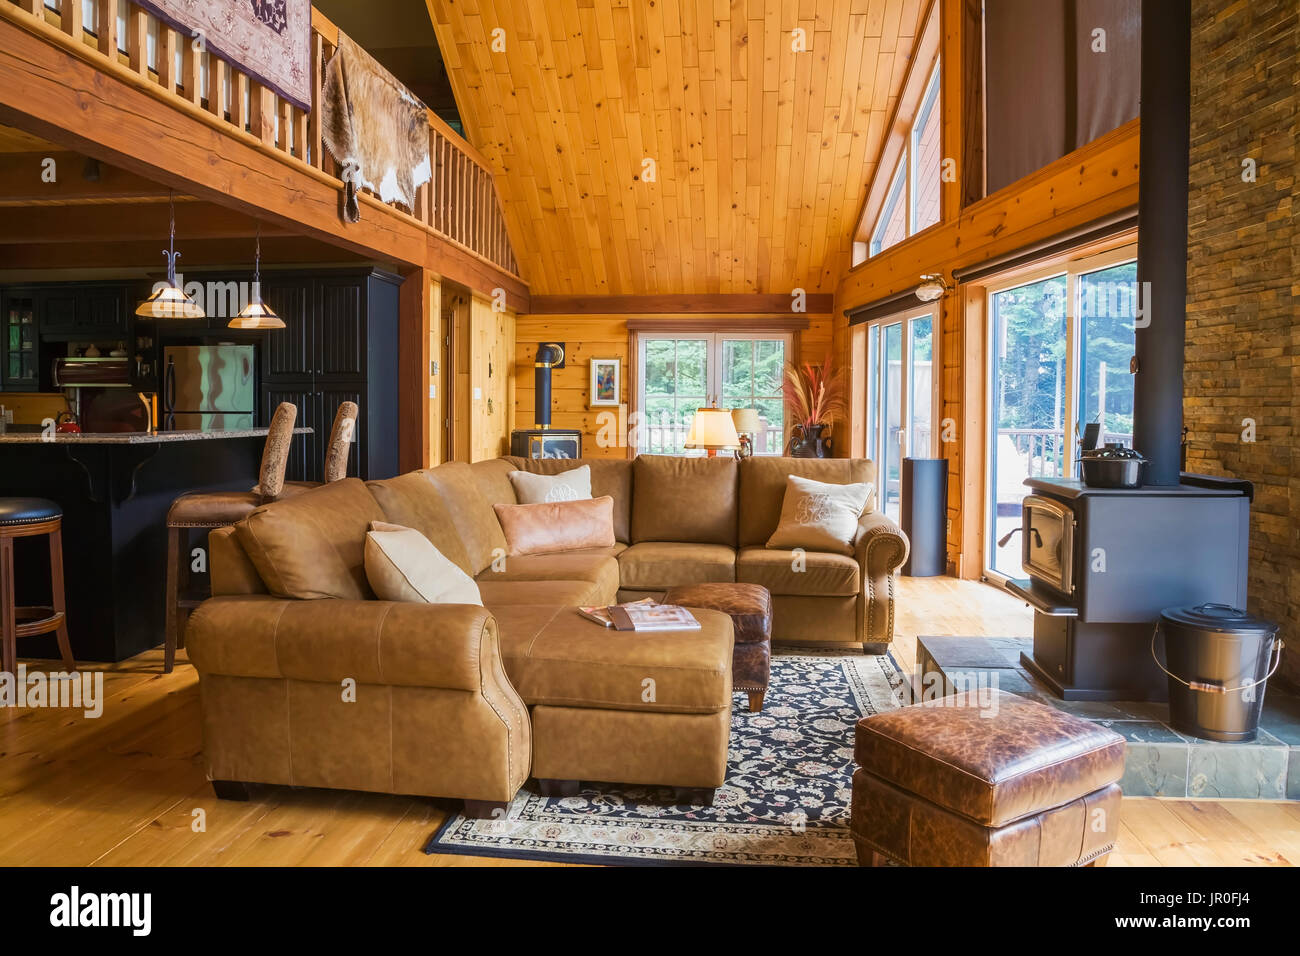 tan leather sectional sofa in living room with view of kitchen and rh alamy com Country Cottage Furniture Cottage Furniture